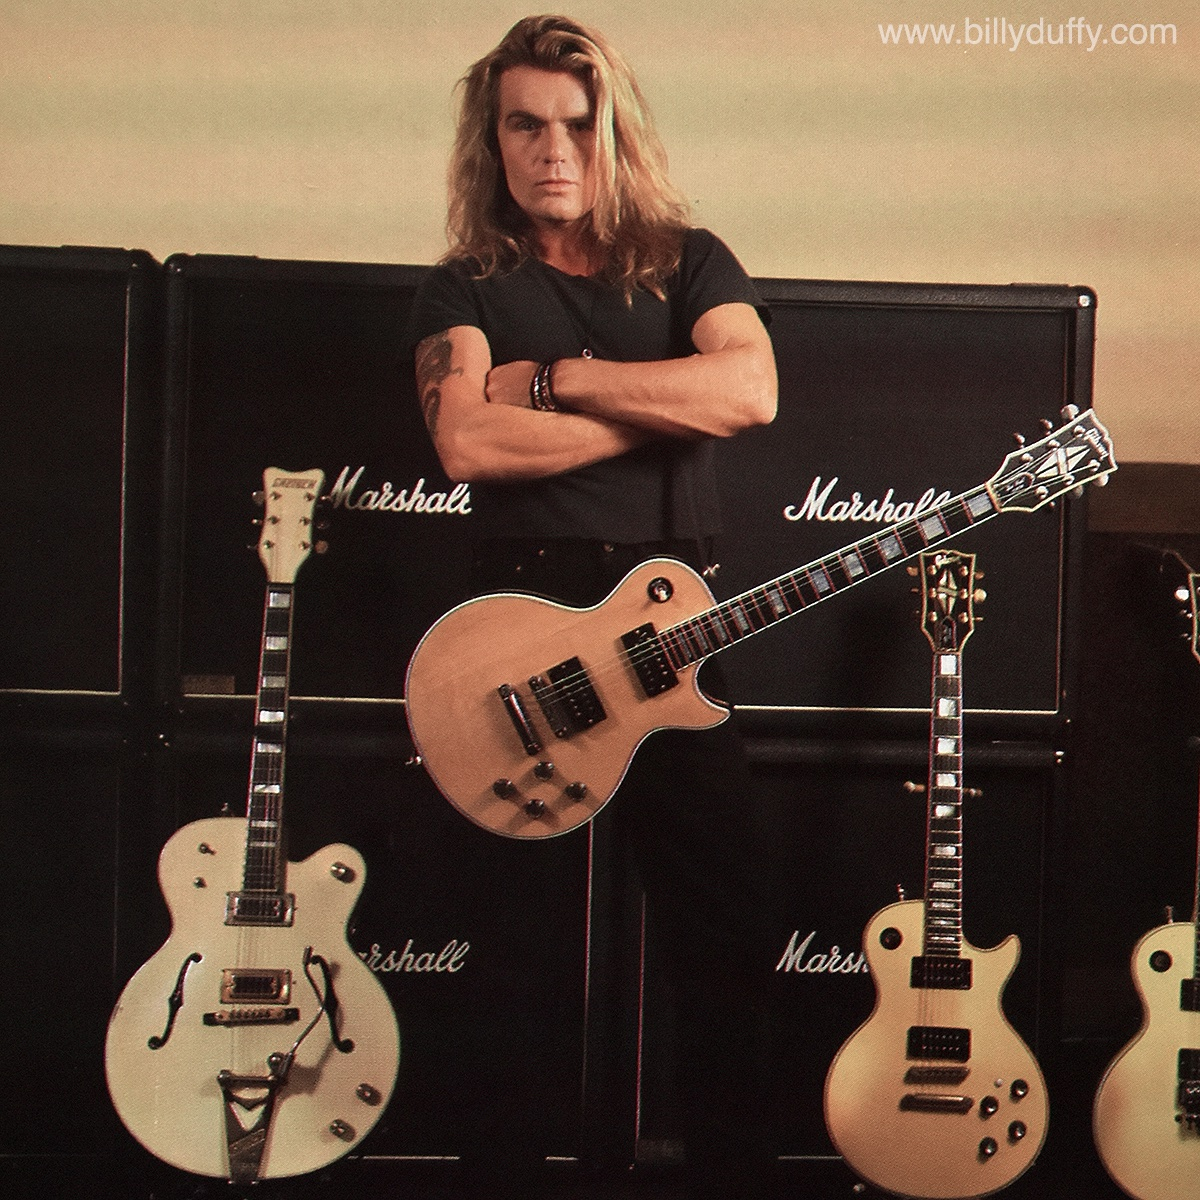 #TBT Guitarist Magazine January 1990… As I've said before Sonic Temple was mainly a Les Paul album but the White Falcon was there both in the studio and live. #BillyDuffy #TheCult #Guitarist #Magazine #1990 #SonicTemple #AmericanHorse #Versus #NewYorkCity #Vote #FalconFriday